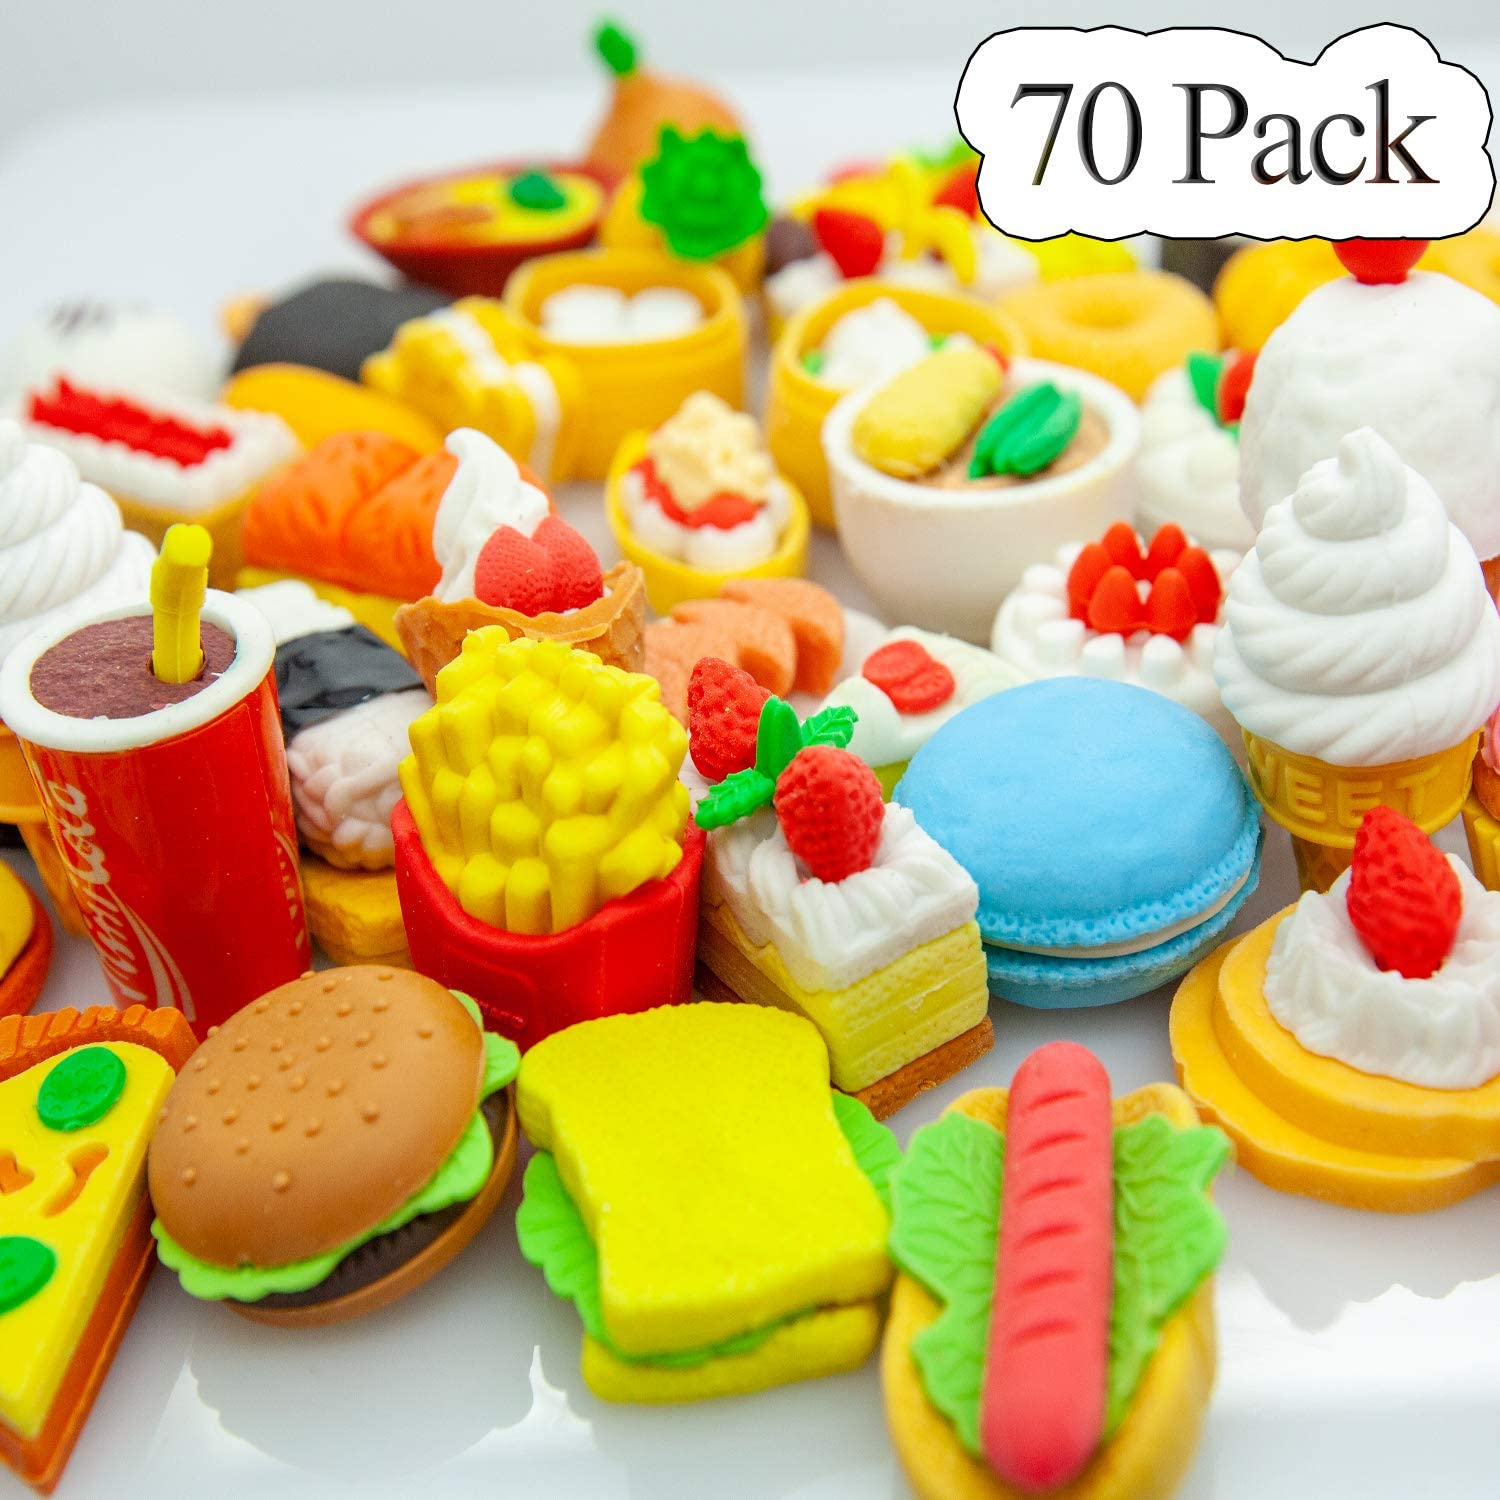 LanMa 70PCS Food Erasers for Kids Fruit Desserts Cake Puzzle Cute Erasers Set for School Classroom Prizes Party Gifts